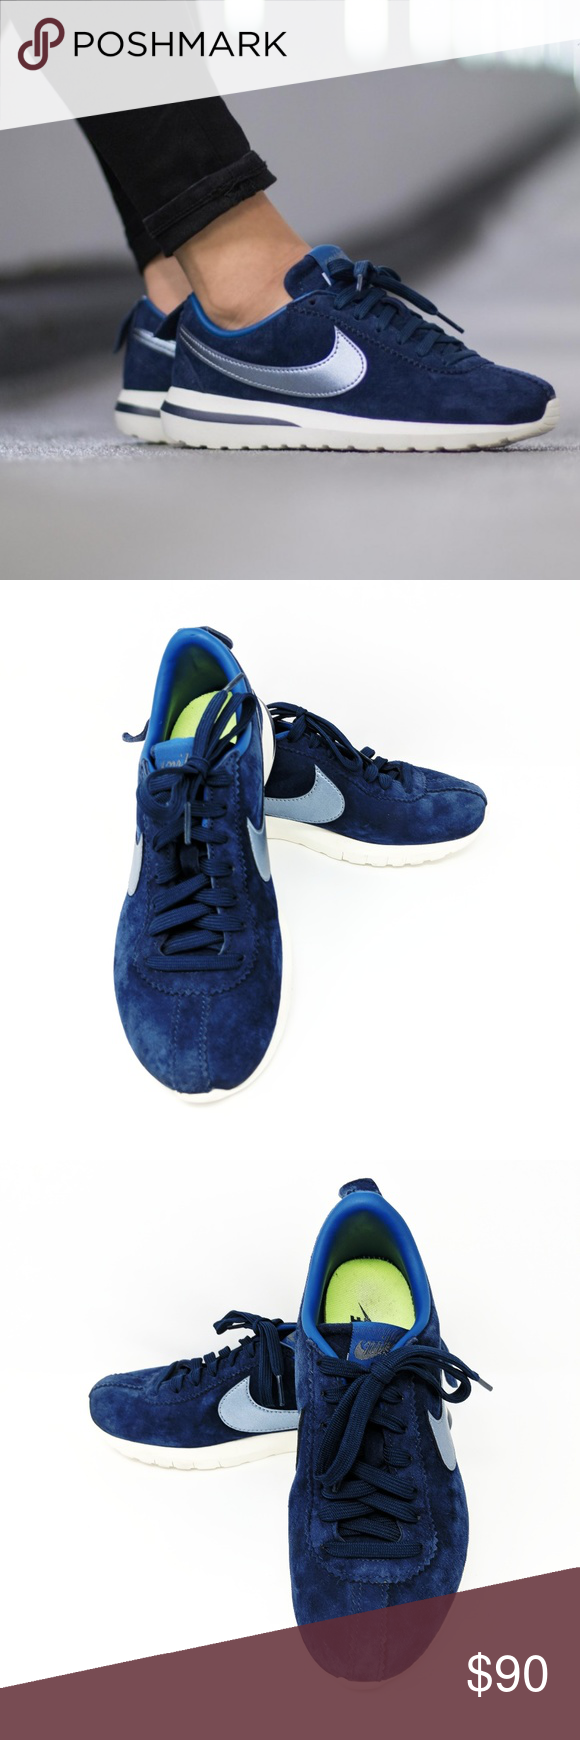 8 Nike Blue Suede Cortez Roshe Shoes WOMENS NIKE ROSHE CORTEZ NM PREMIUM  SUEDE NAVY RUNNING TRAINER SHOE Style - 819862-400 Color - Midnight Navy  Size - 8 ... 8297d8e46